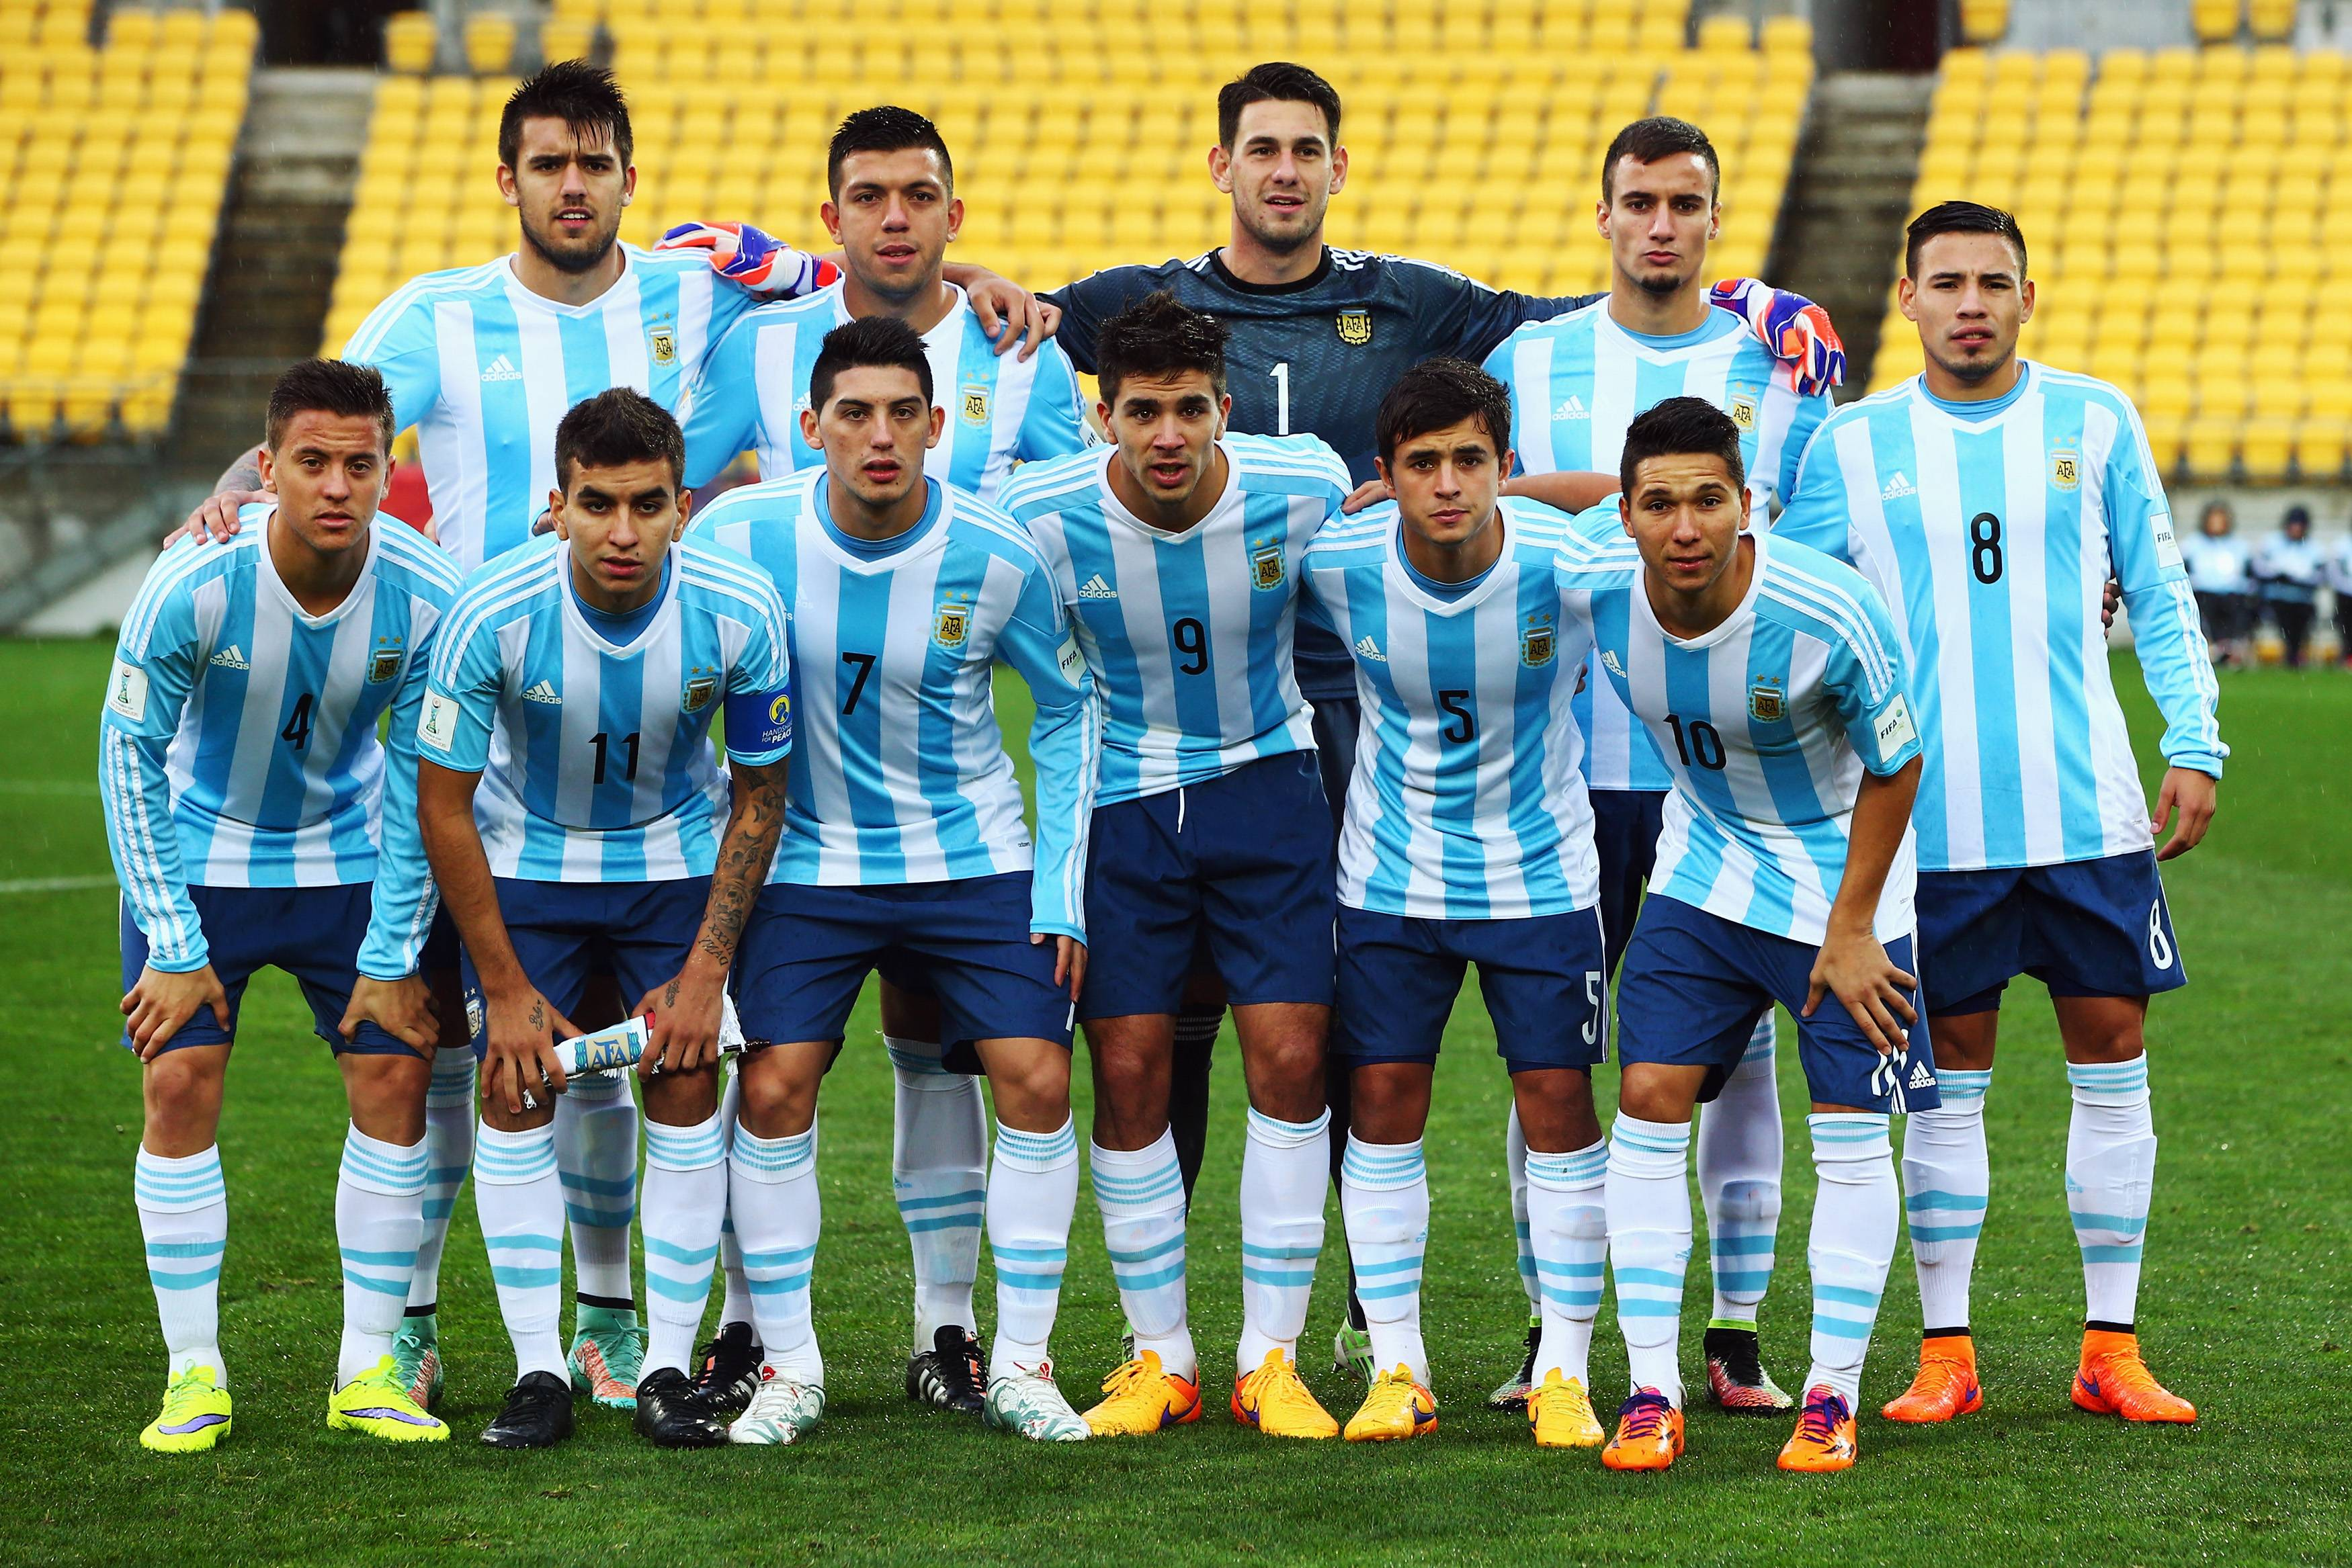 Argentina football team group photo